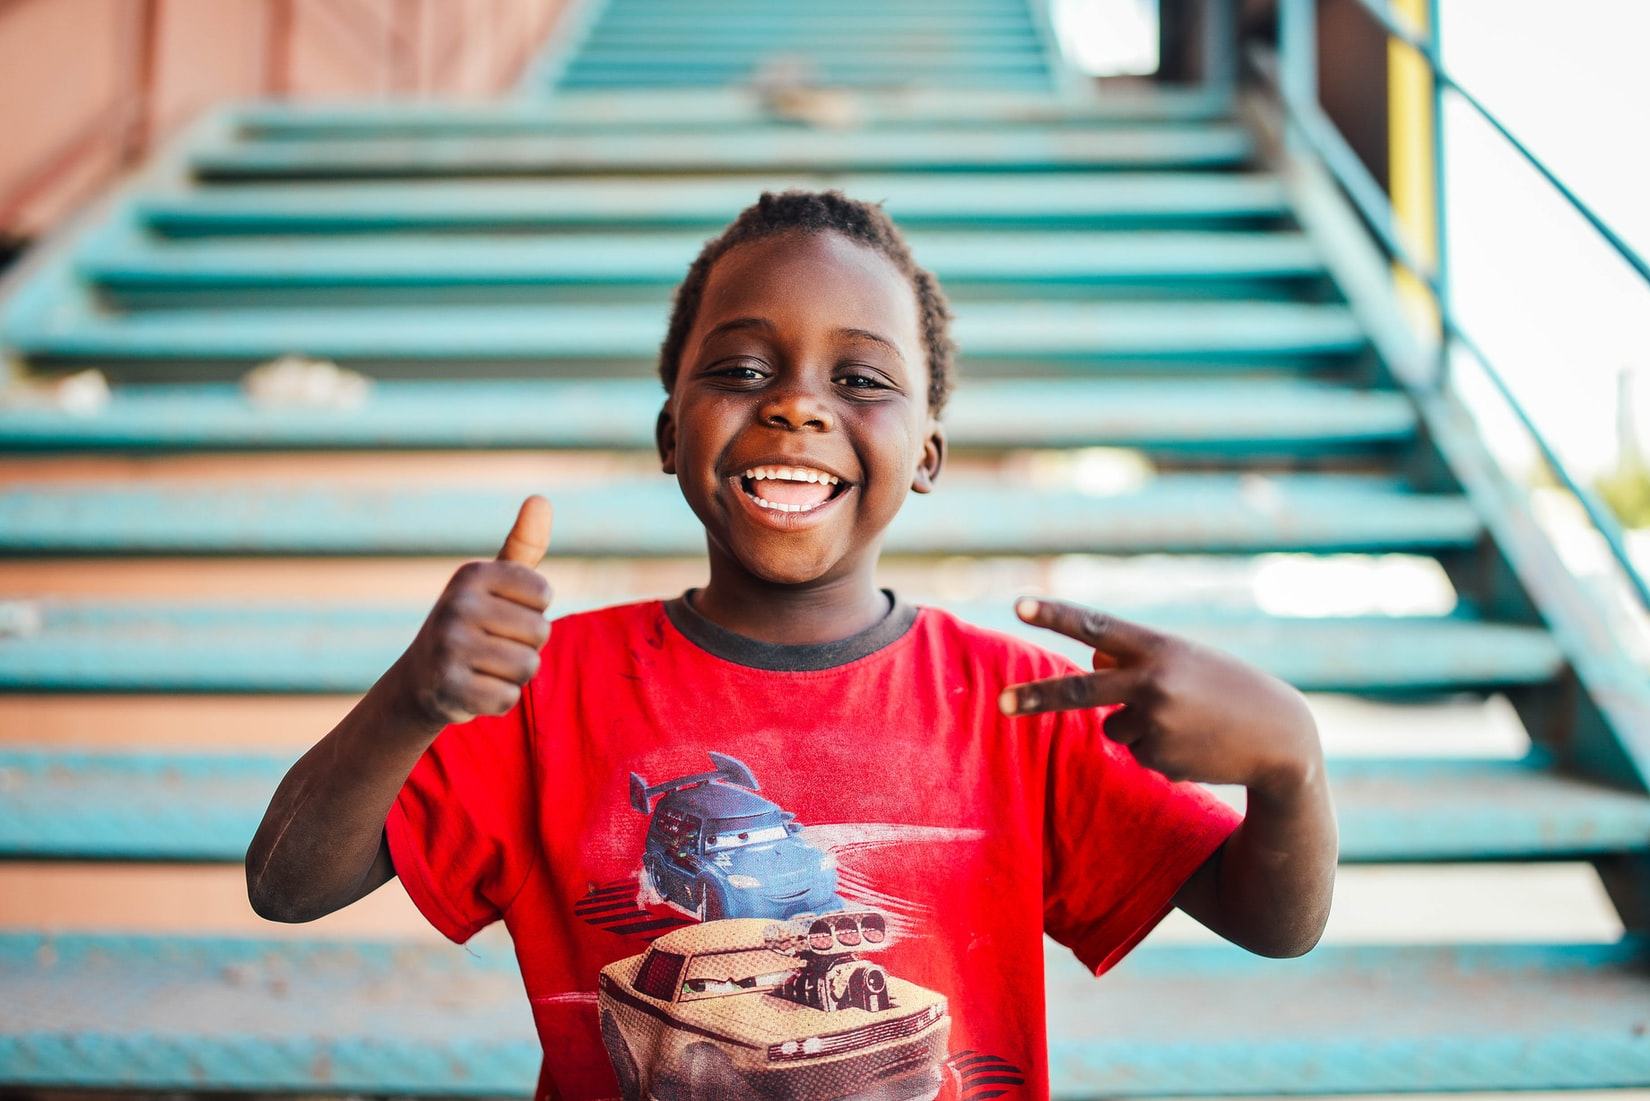 A young boy, wearing a red Cars T shirt and a big smile, stands in front of a turquoise outdoor staircase. He gives a thumbs up with one hand and a peace sign with the other